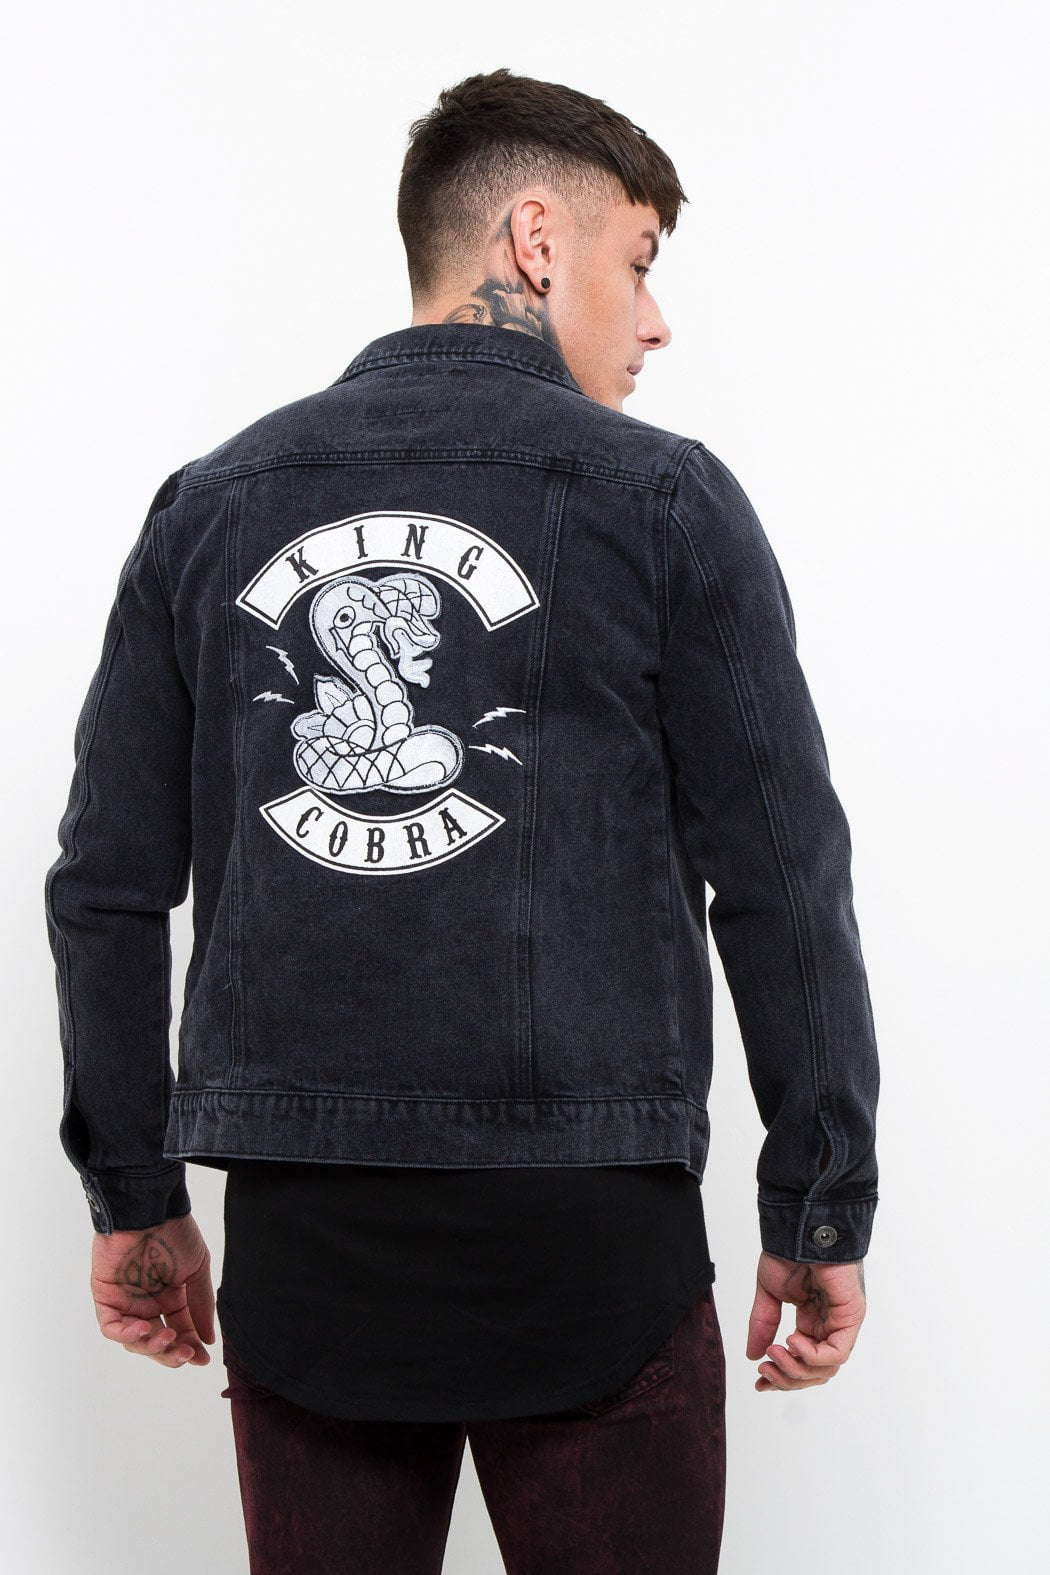 Norton Black Denim Trophy Jacket King Cobra - Liquor N Poker  Liquor N Poker